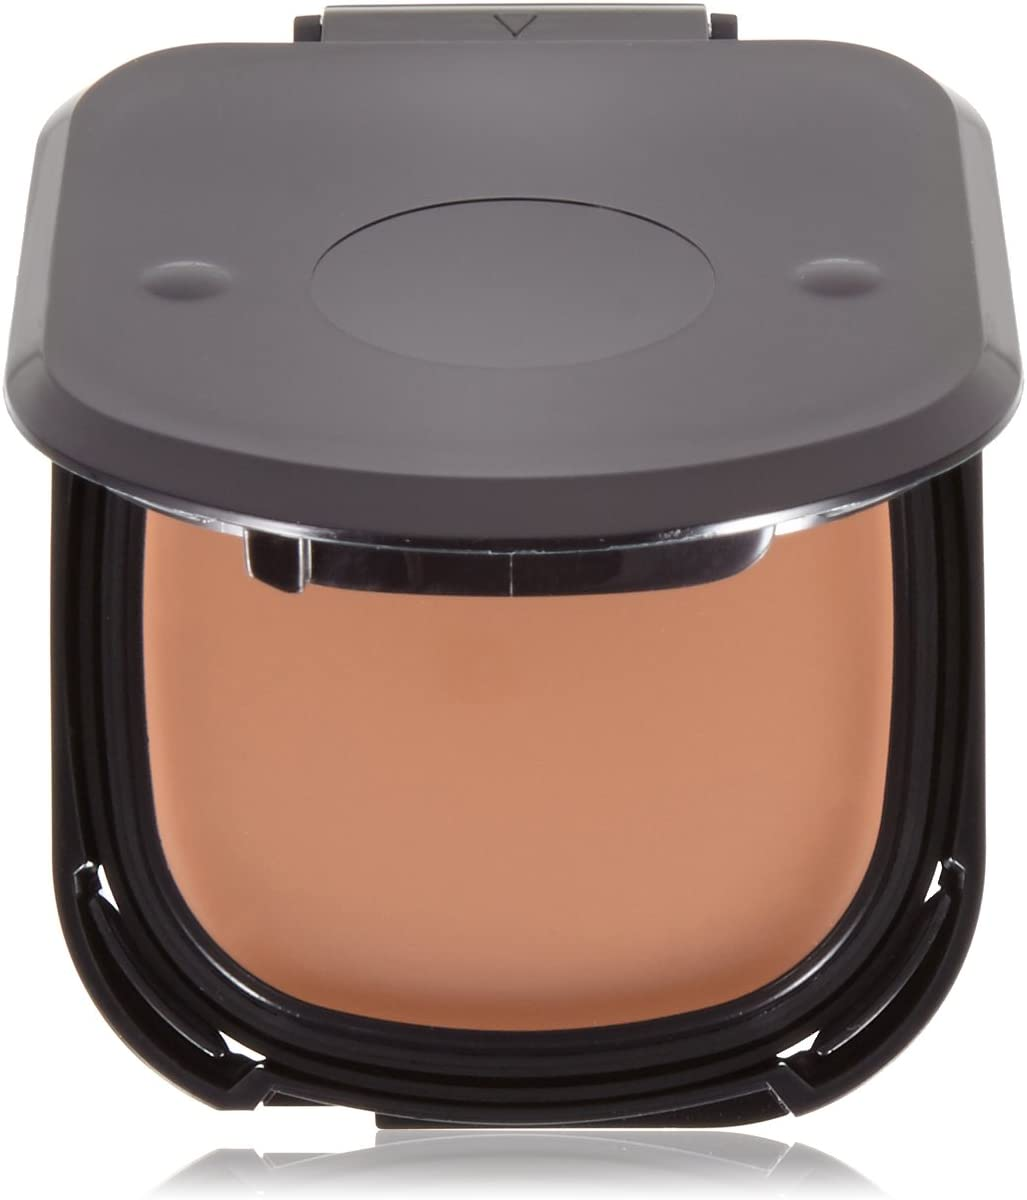 Shiseido The Makeup Advanced Hydro Liquid Compact (Refill) 0.42oz./12g B60 Natural Deep Beige